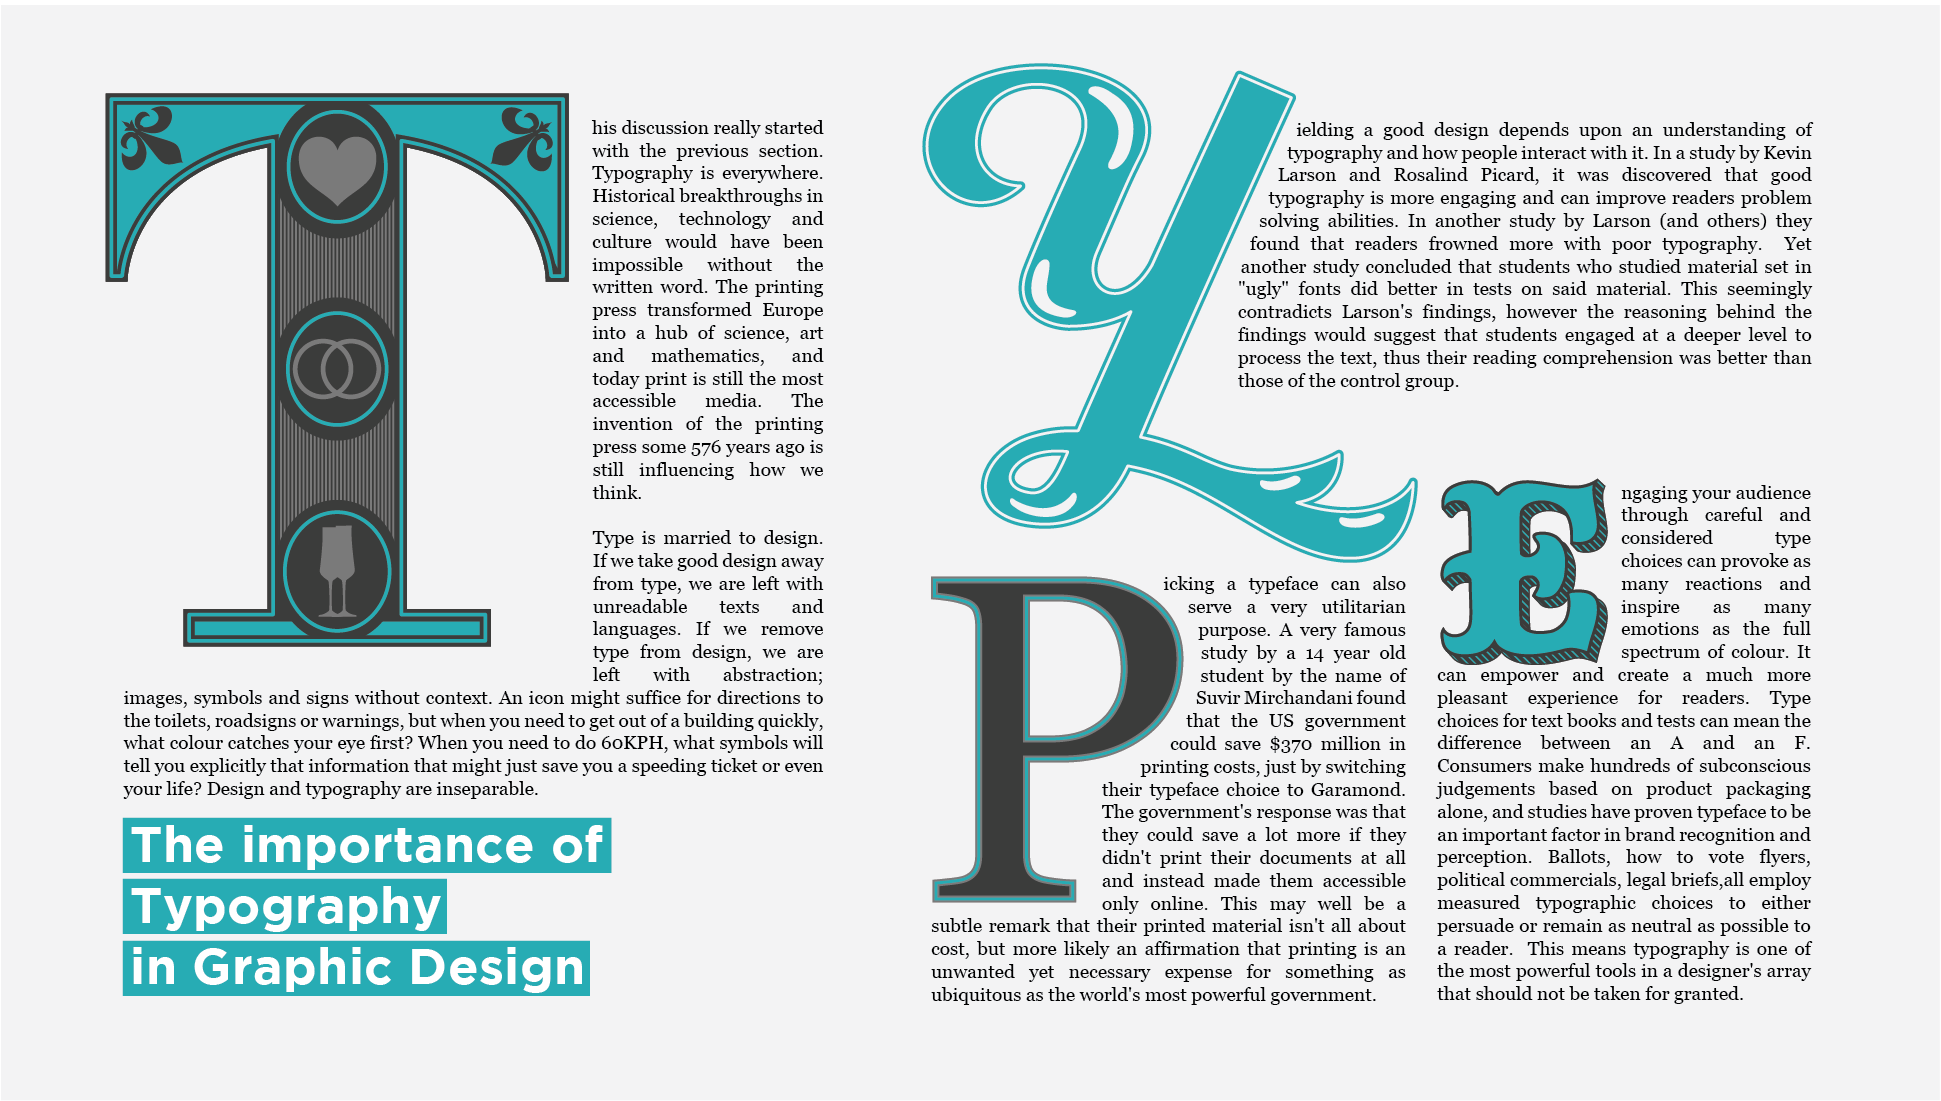 Importance of Type in Graphic Design